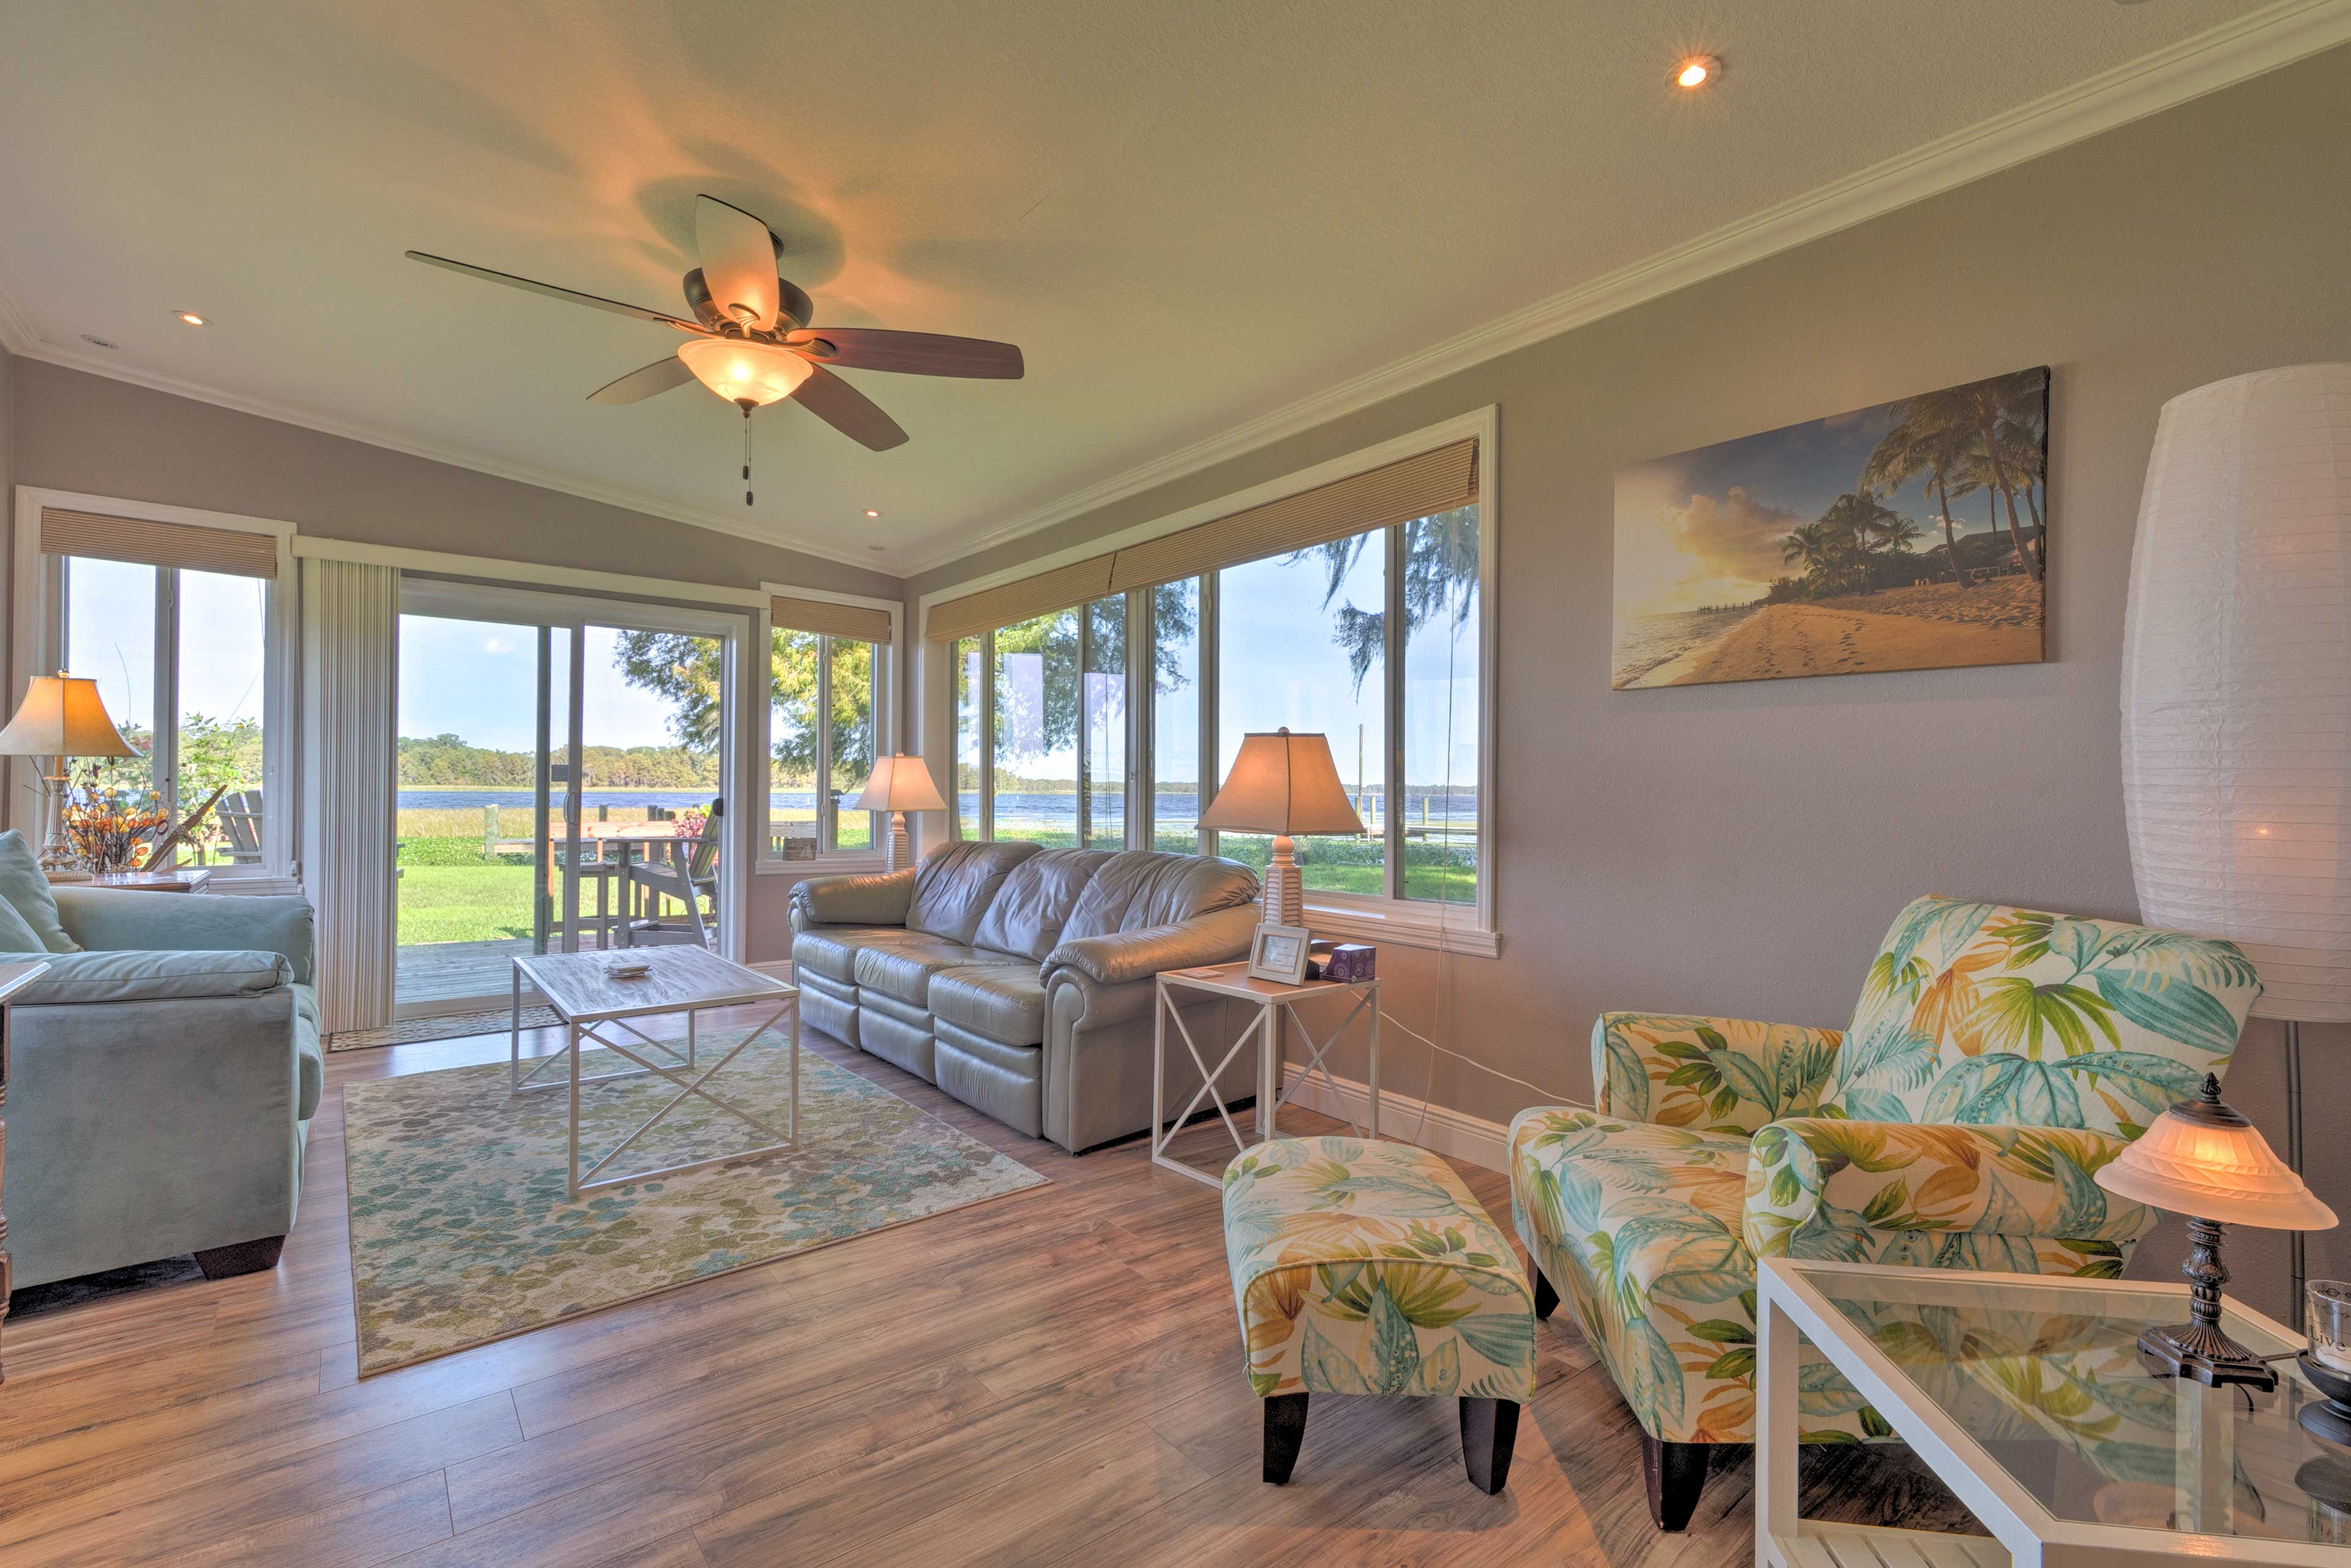 The bungalow home features comfortable seating and tropical decor.